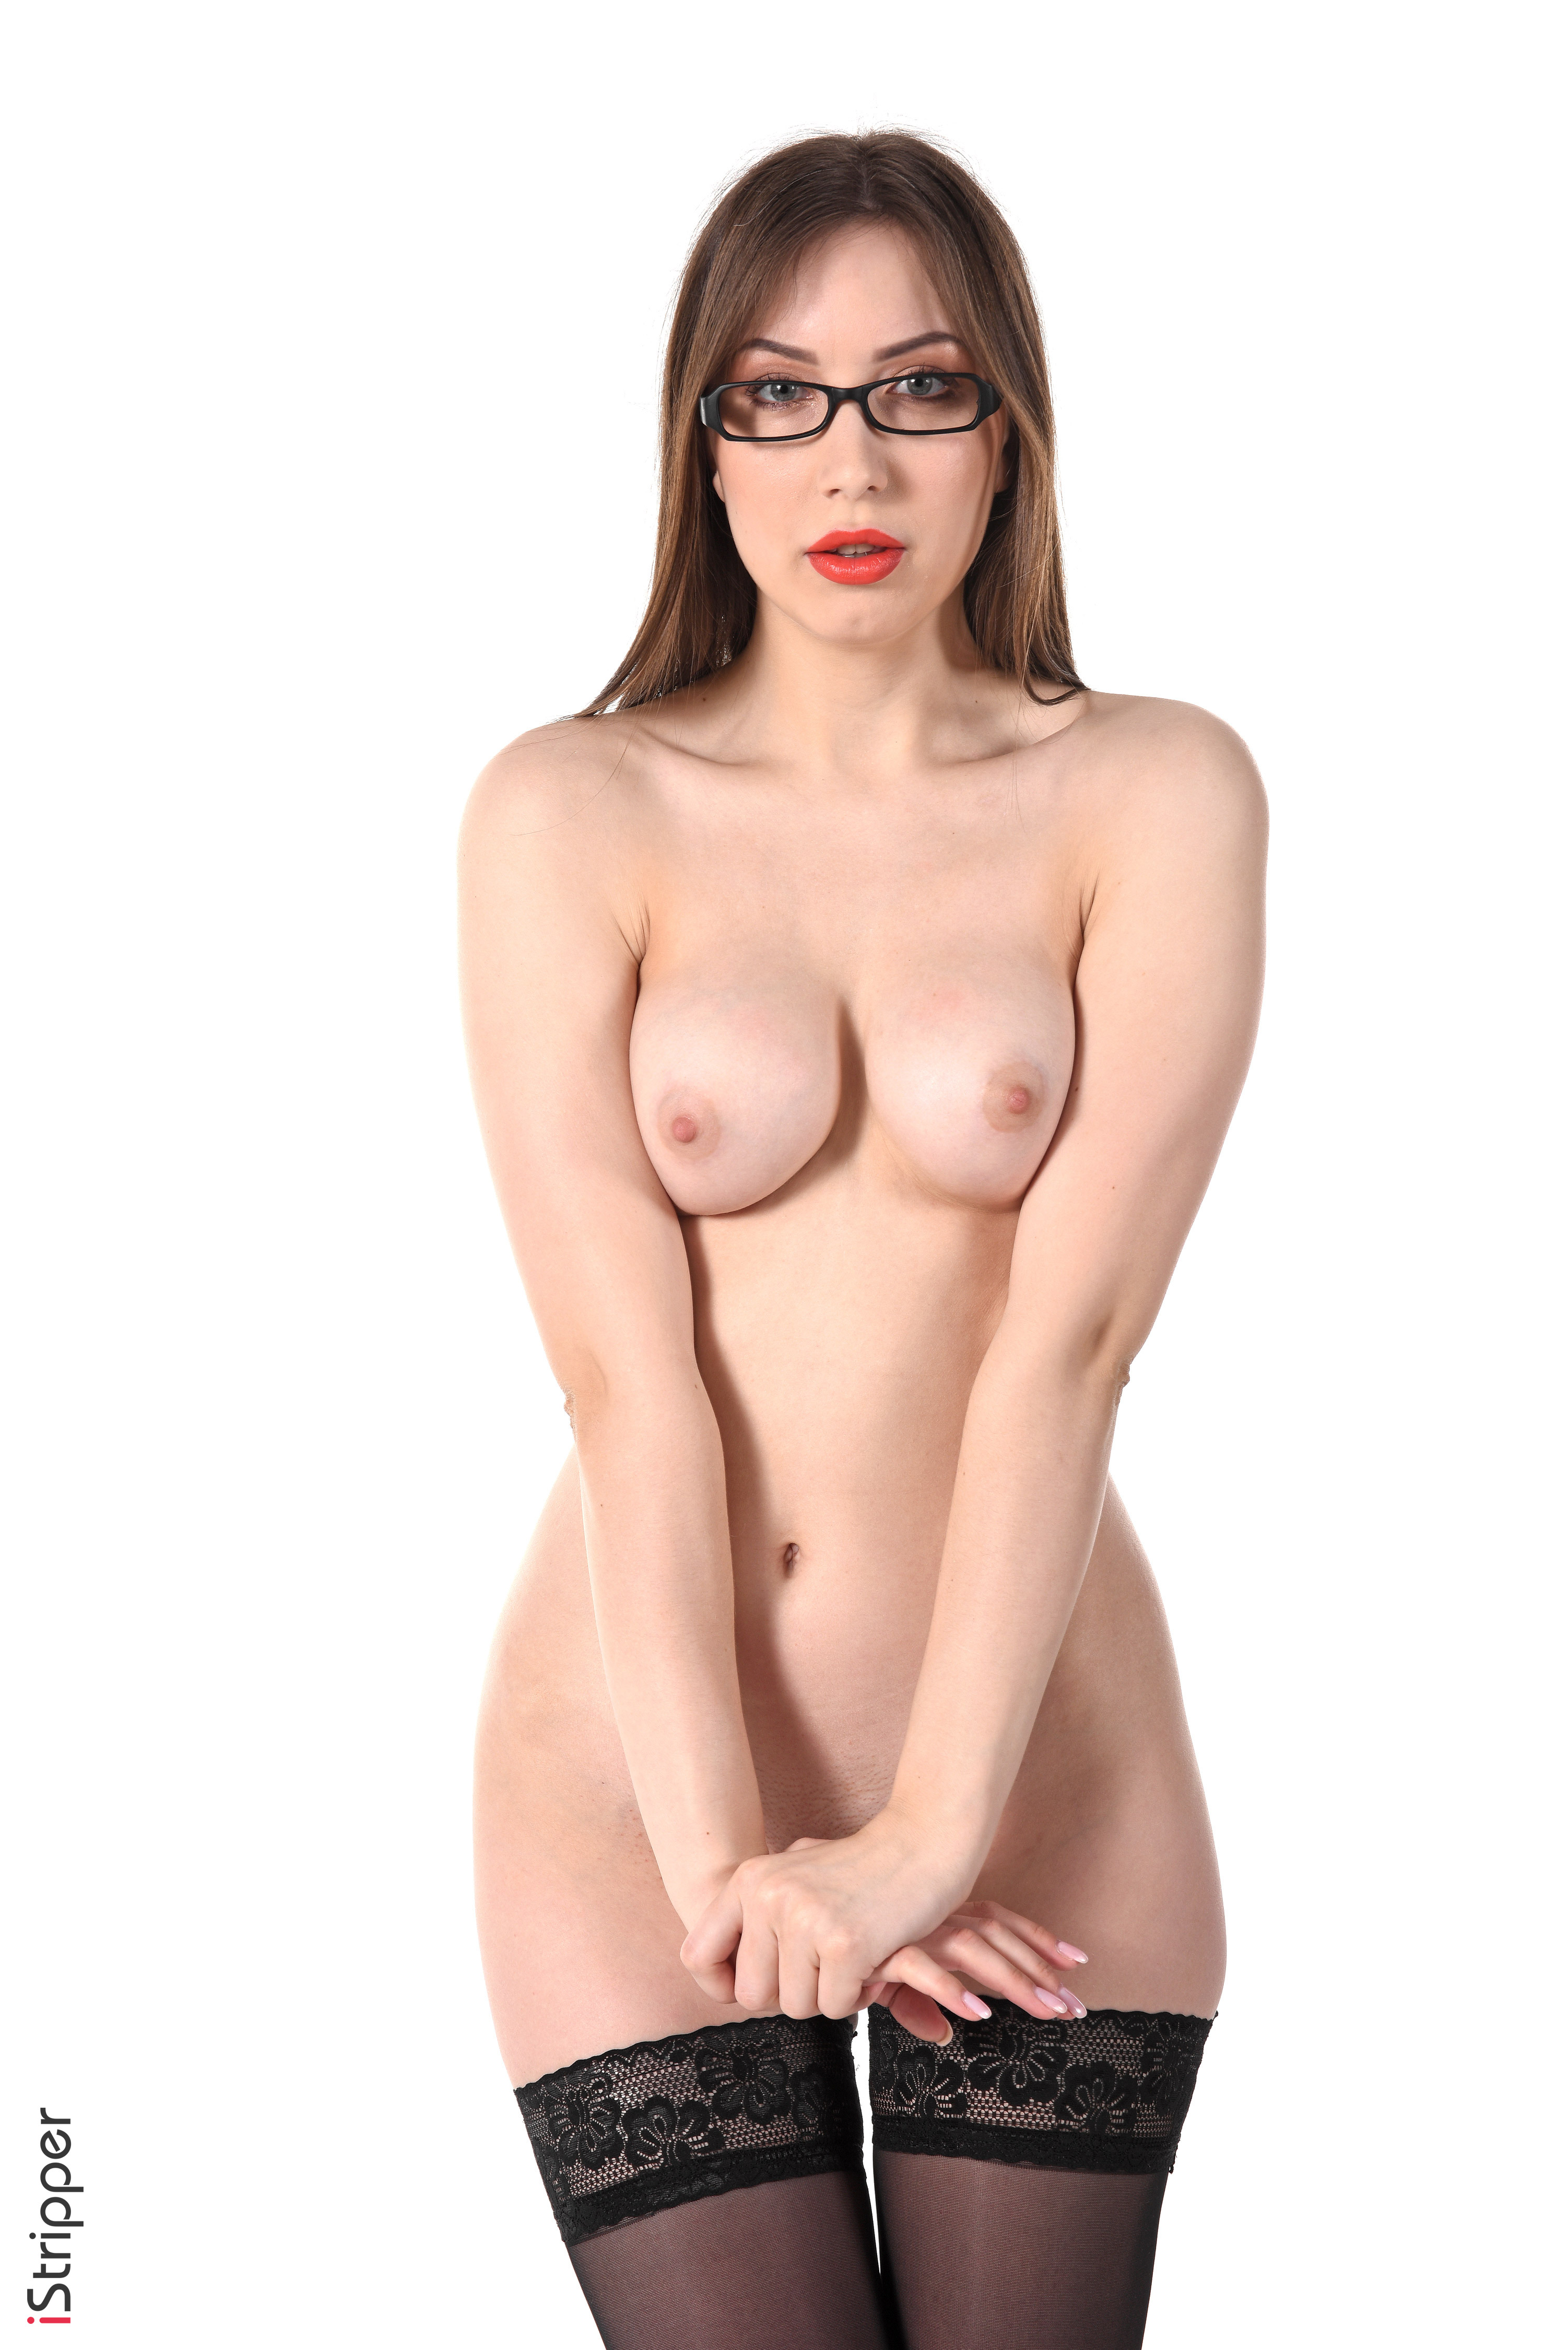 naked sexy girl wallpapers